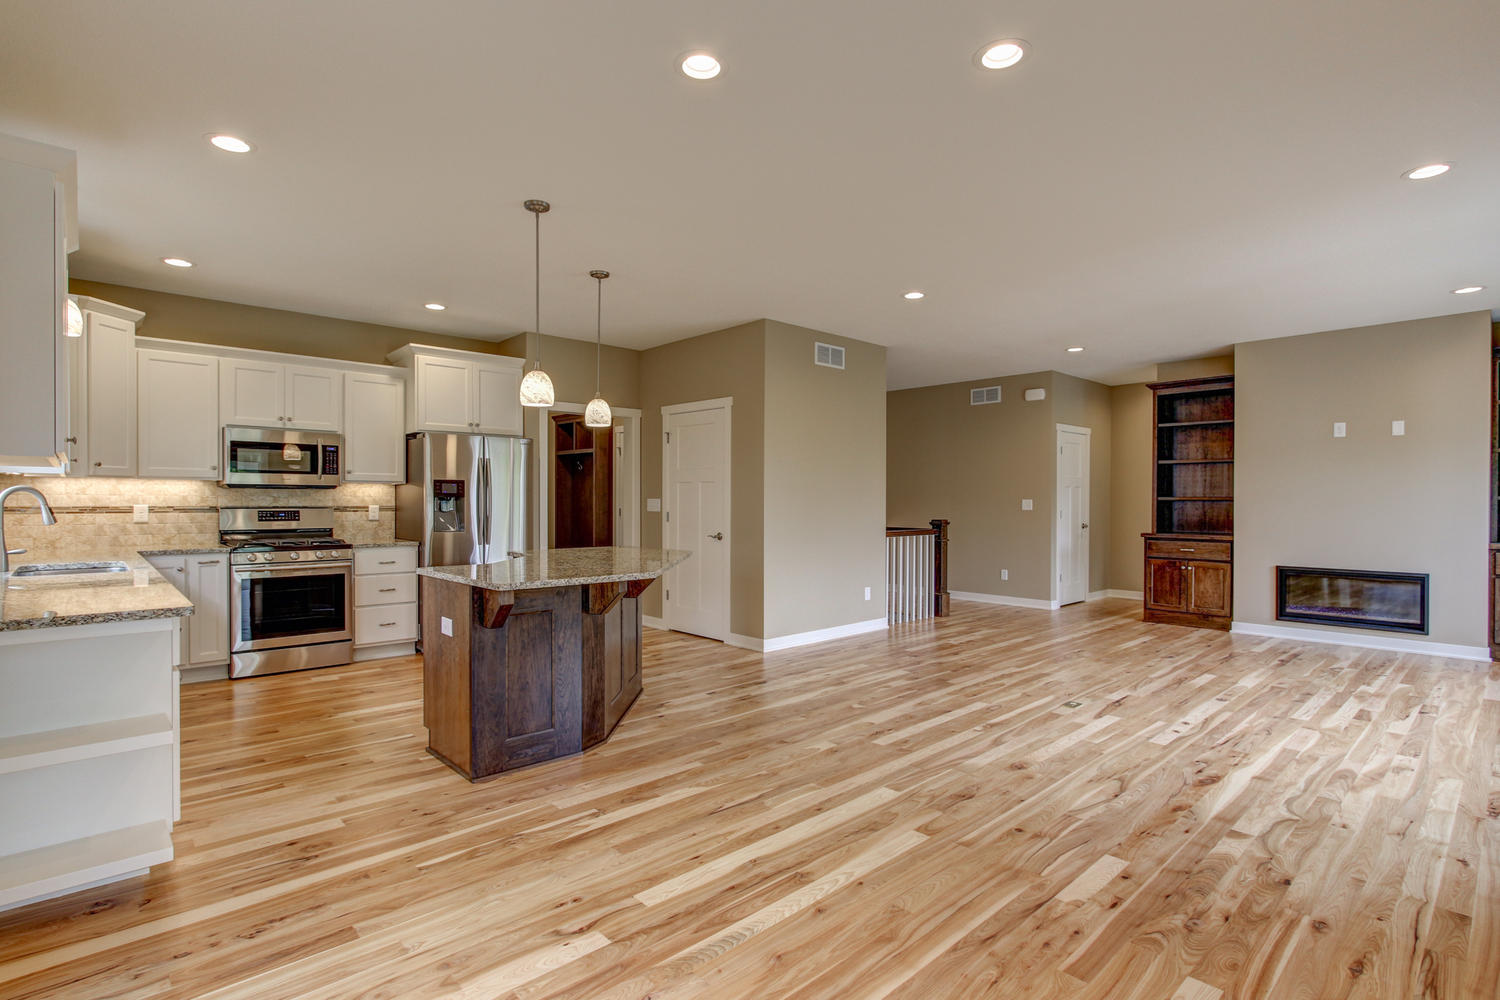 Home by General Contractor Mitch Hagen